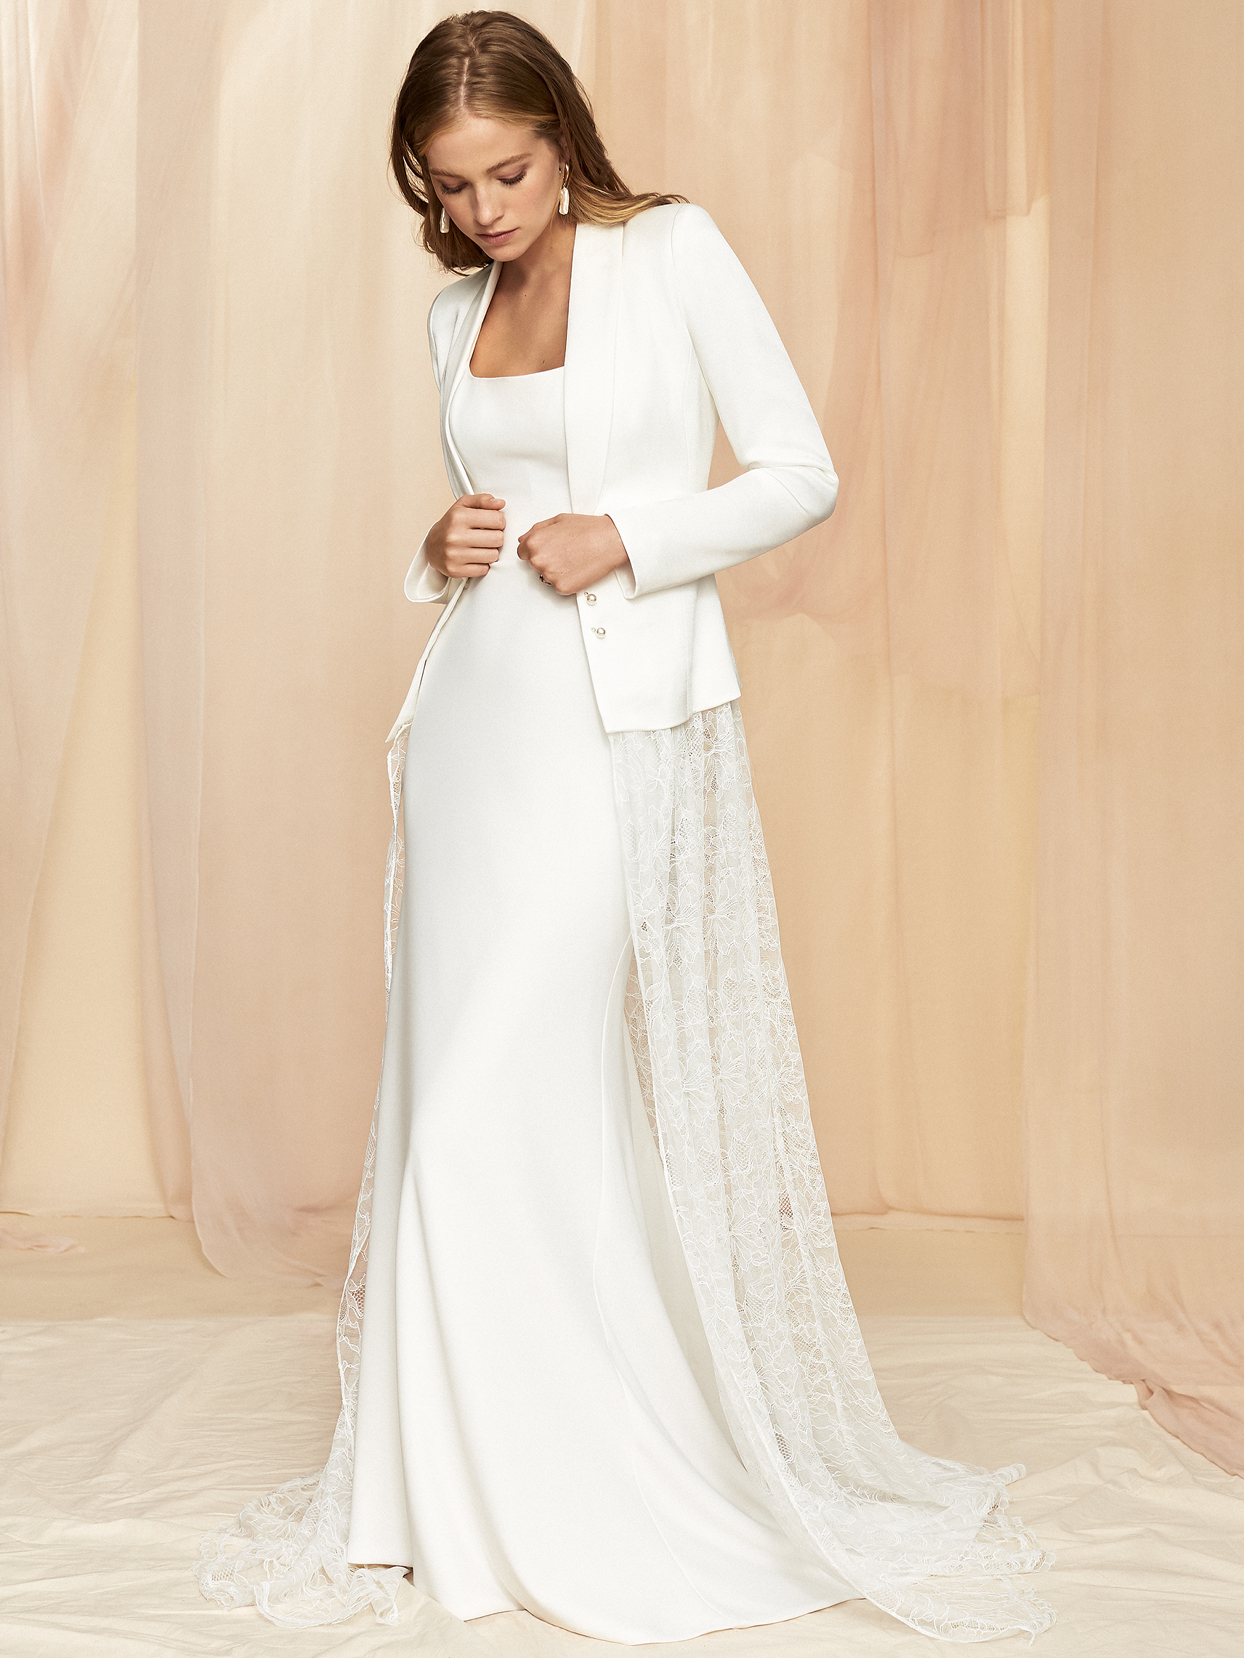 Savannah Miller long sleeve jacket lace train fit and flare wedding dress fall 2020